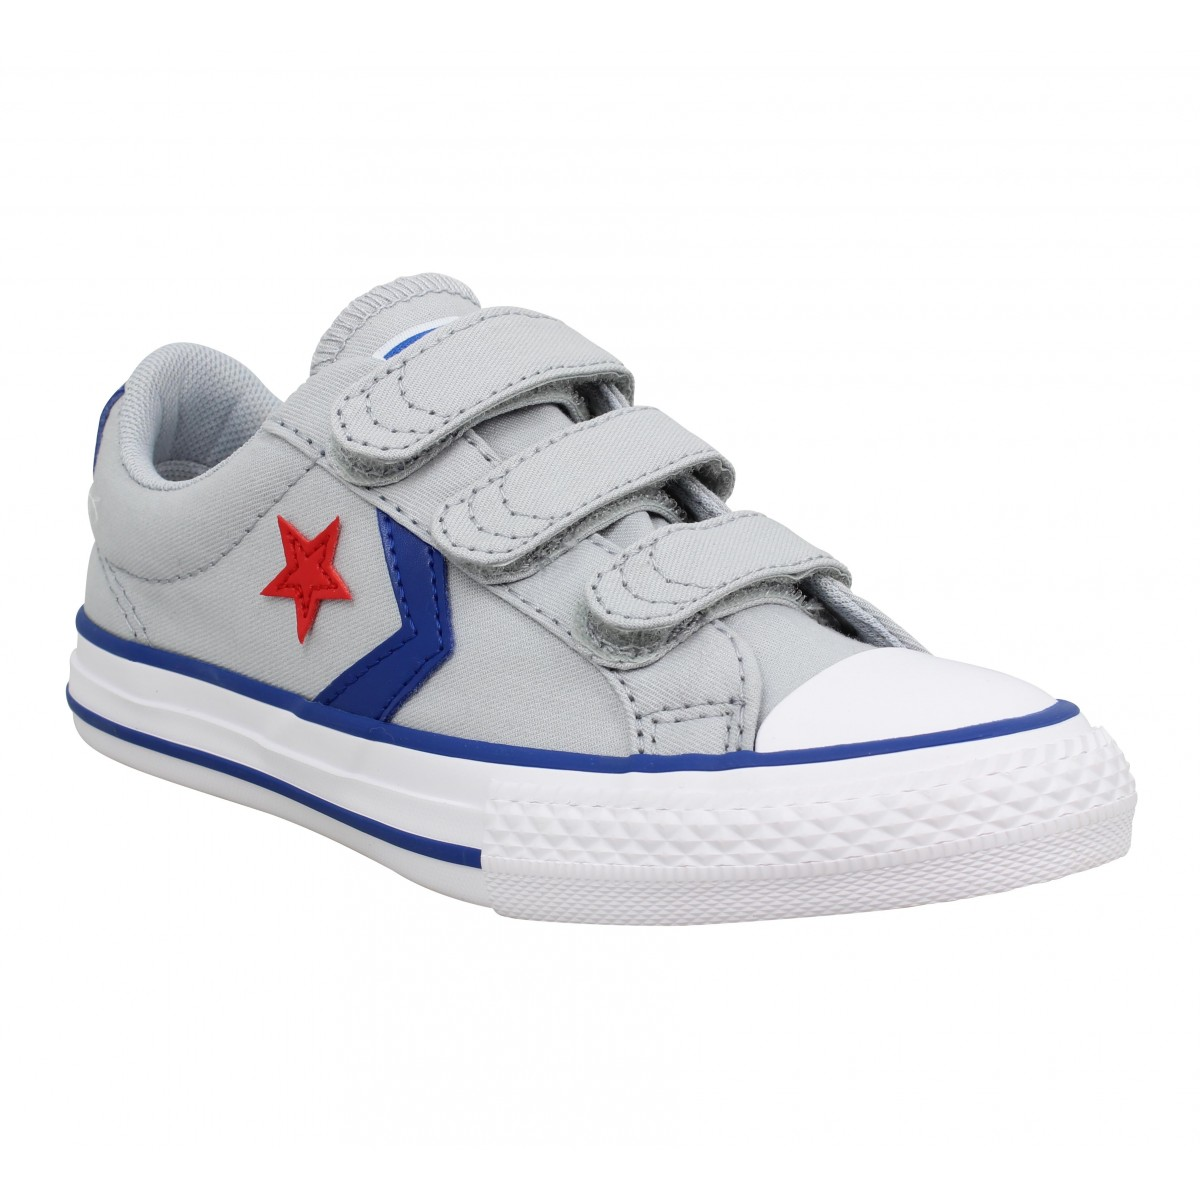 8ac27a4f34872 Converse star player 3v ox toile enfant grey enfants